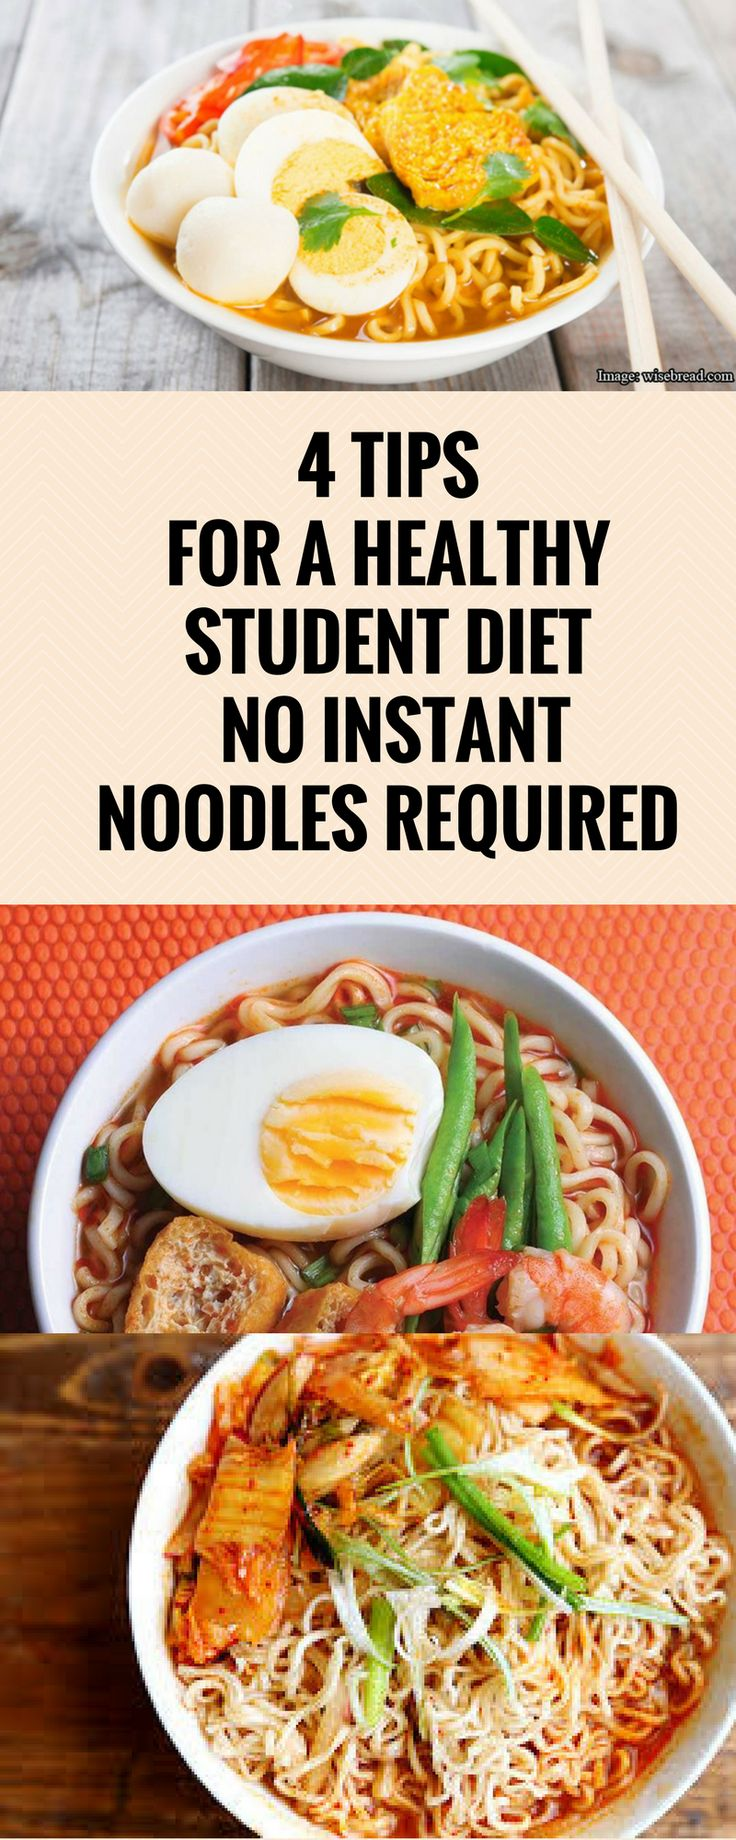 4 TIPS FOR A HEALTHY STUDENT DIET, NO INSTANT NOODLES REQUIRED *